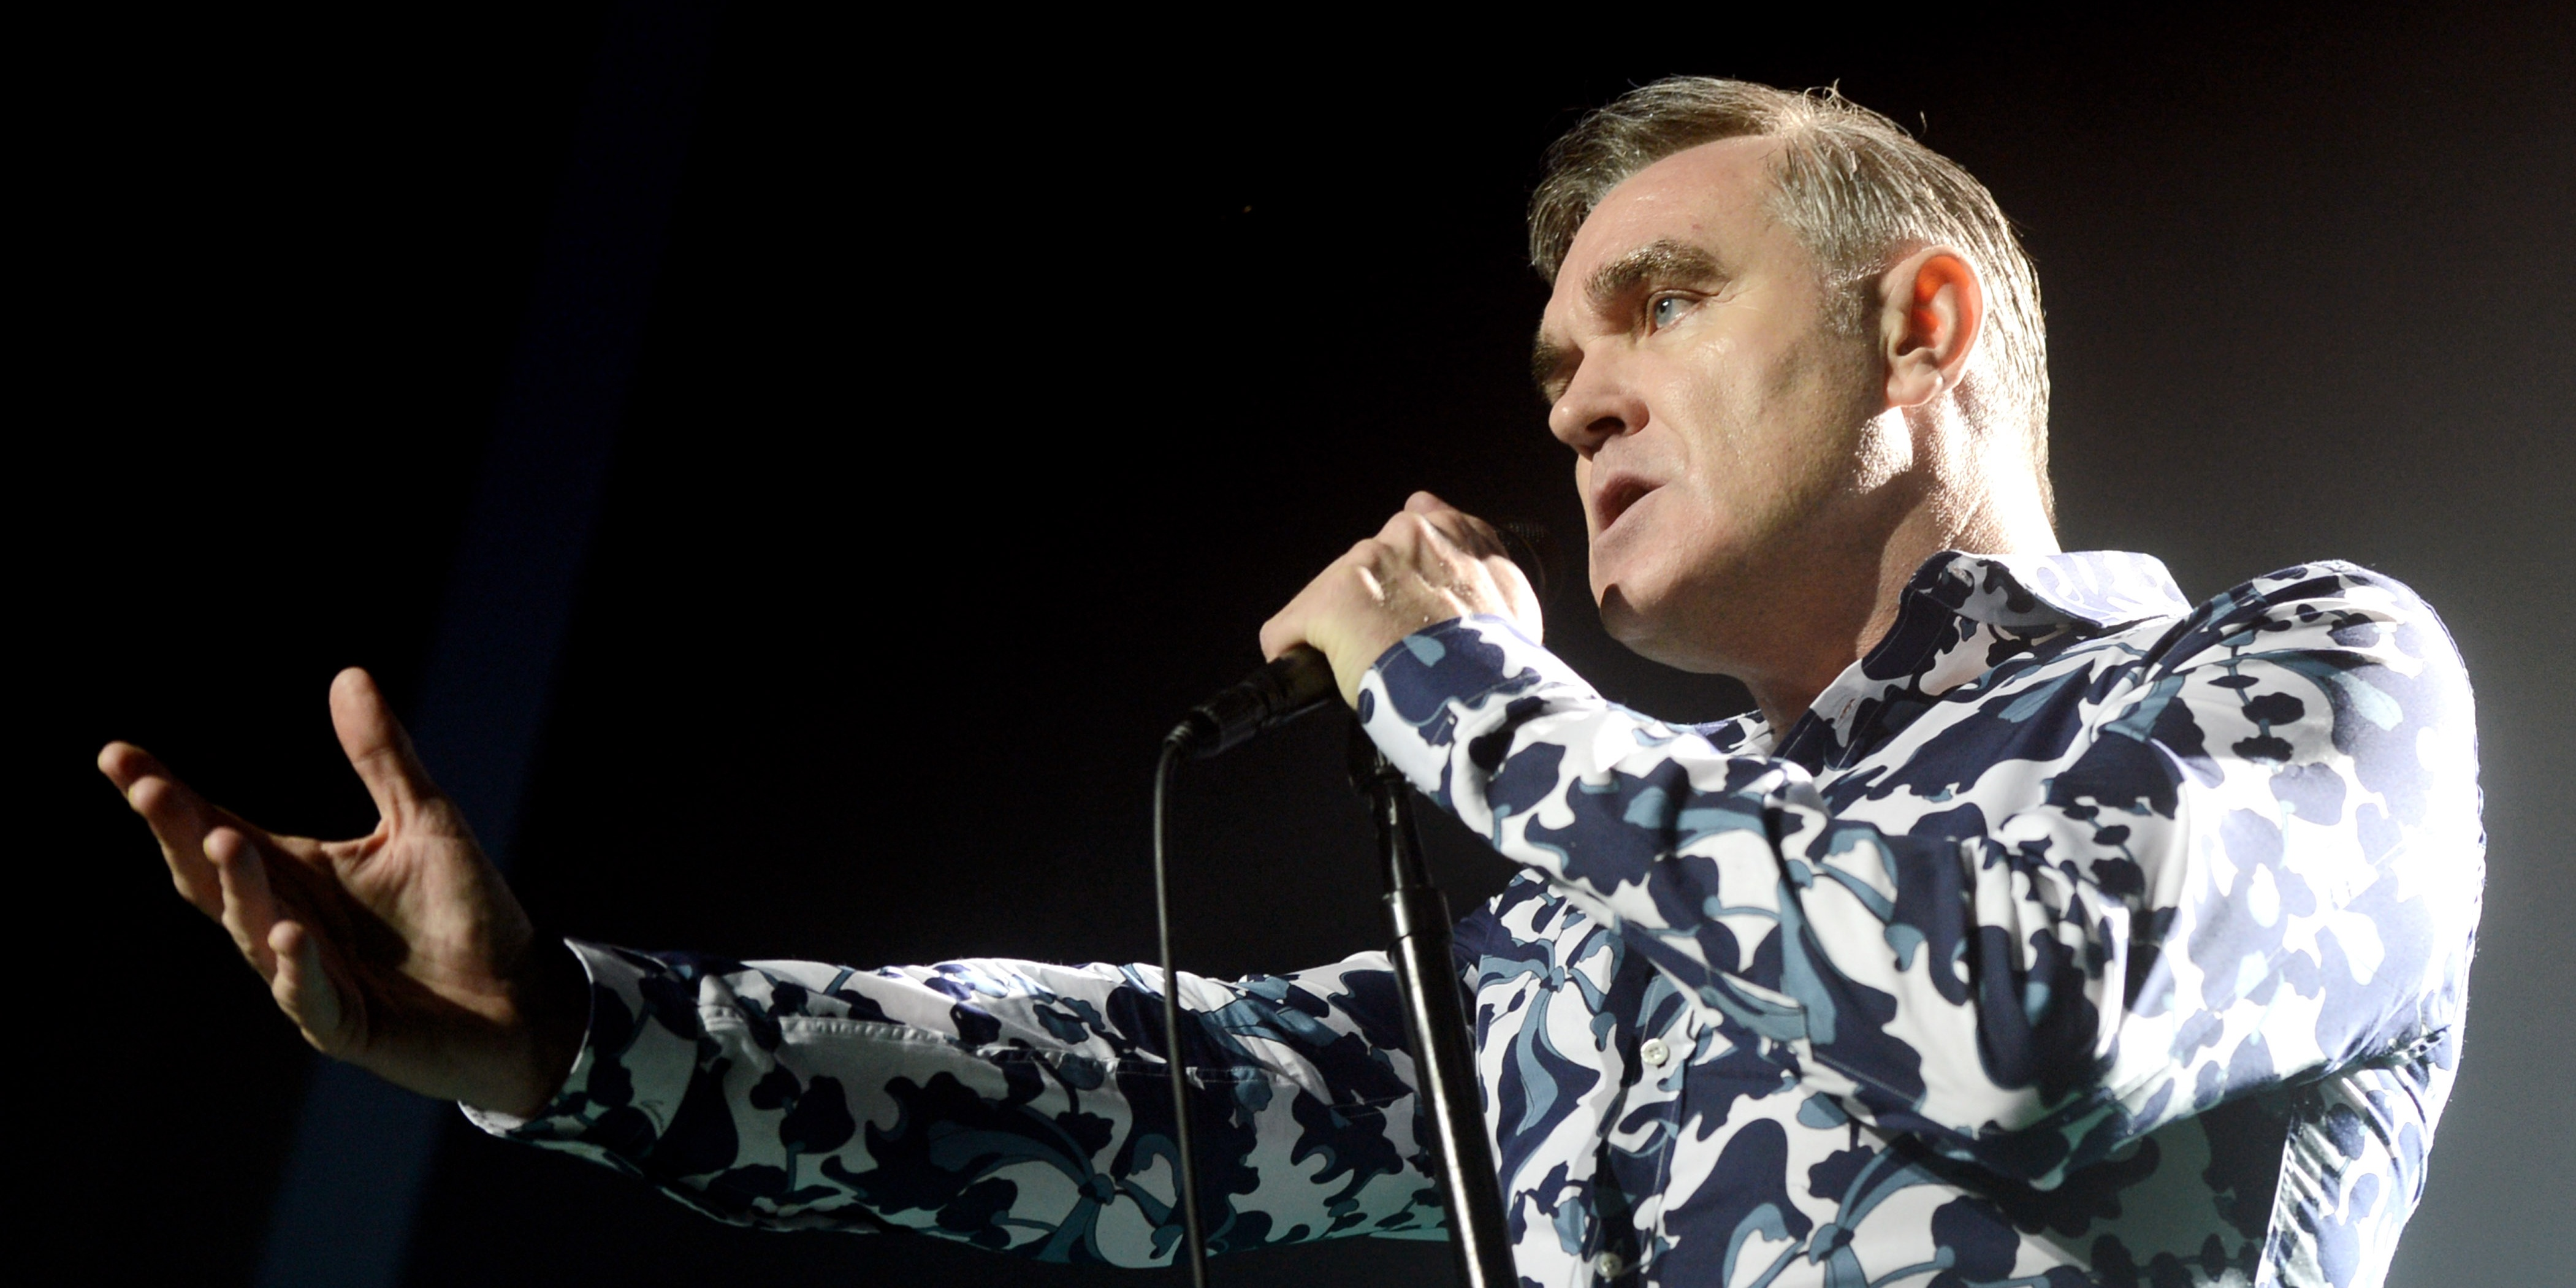 Morrissey has postponed his show in Singapore to Monday